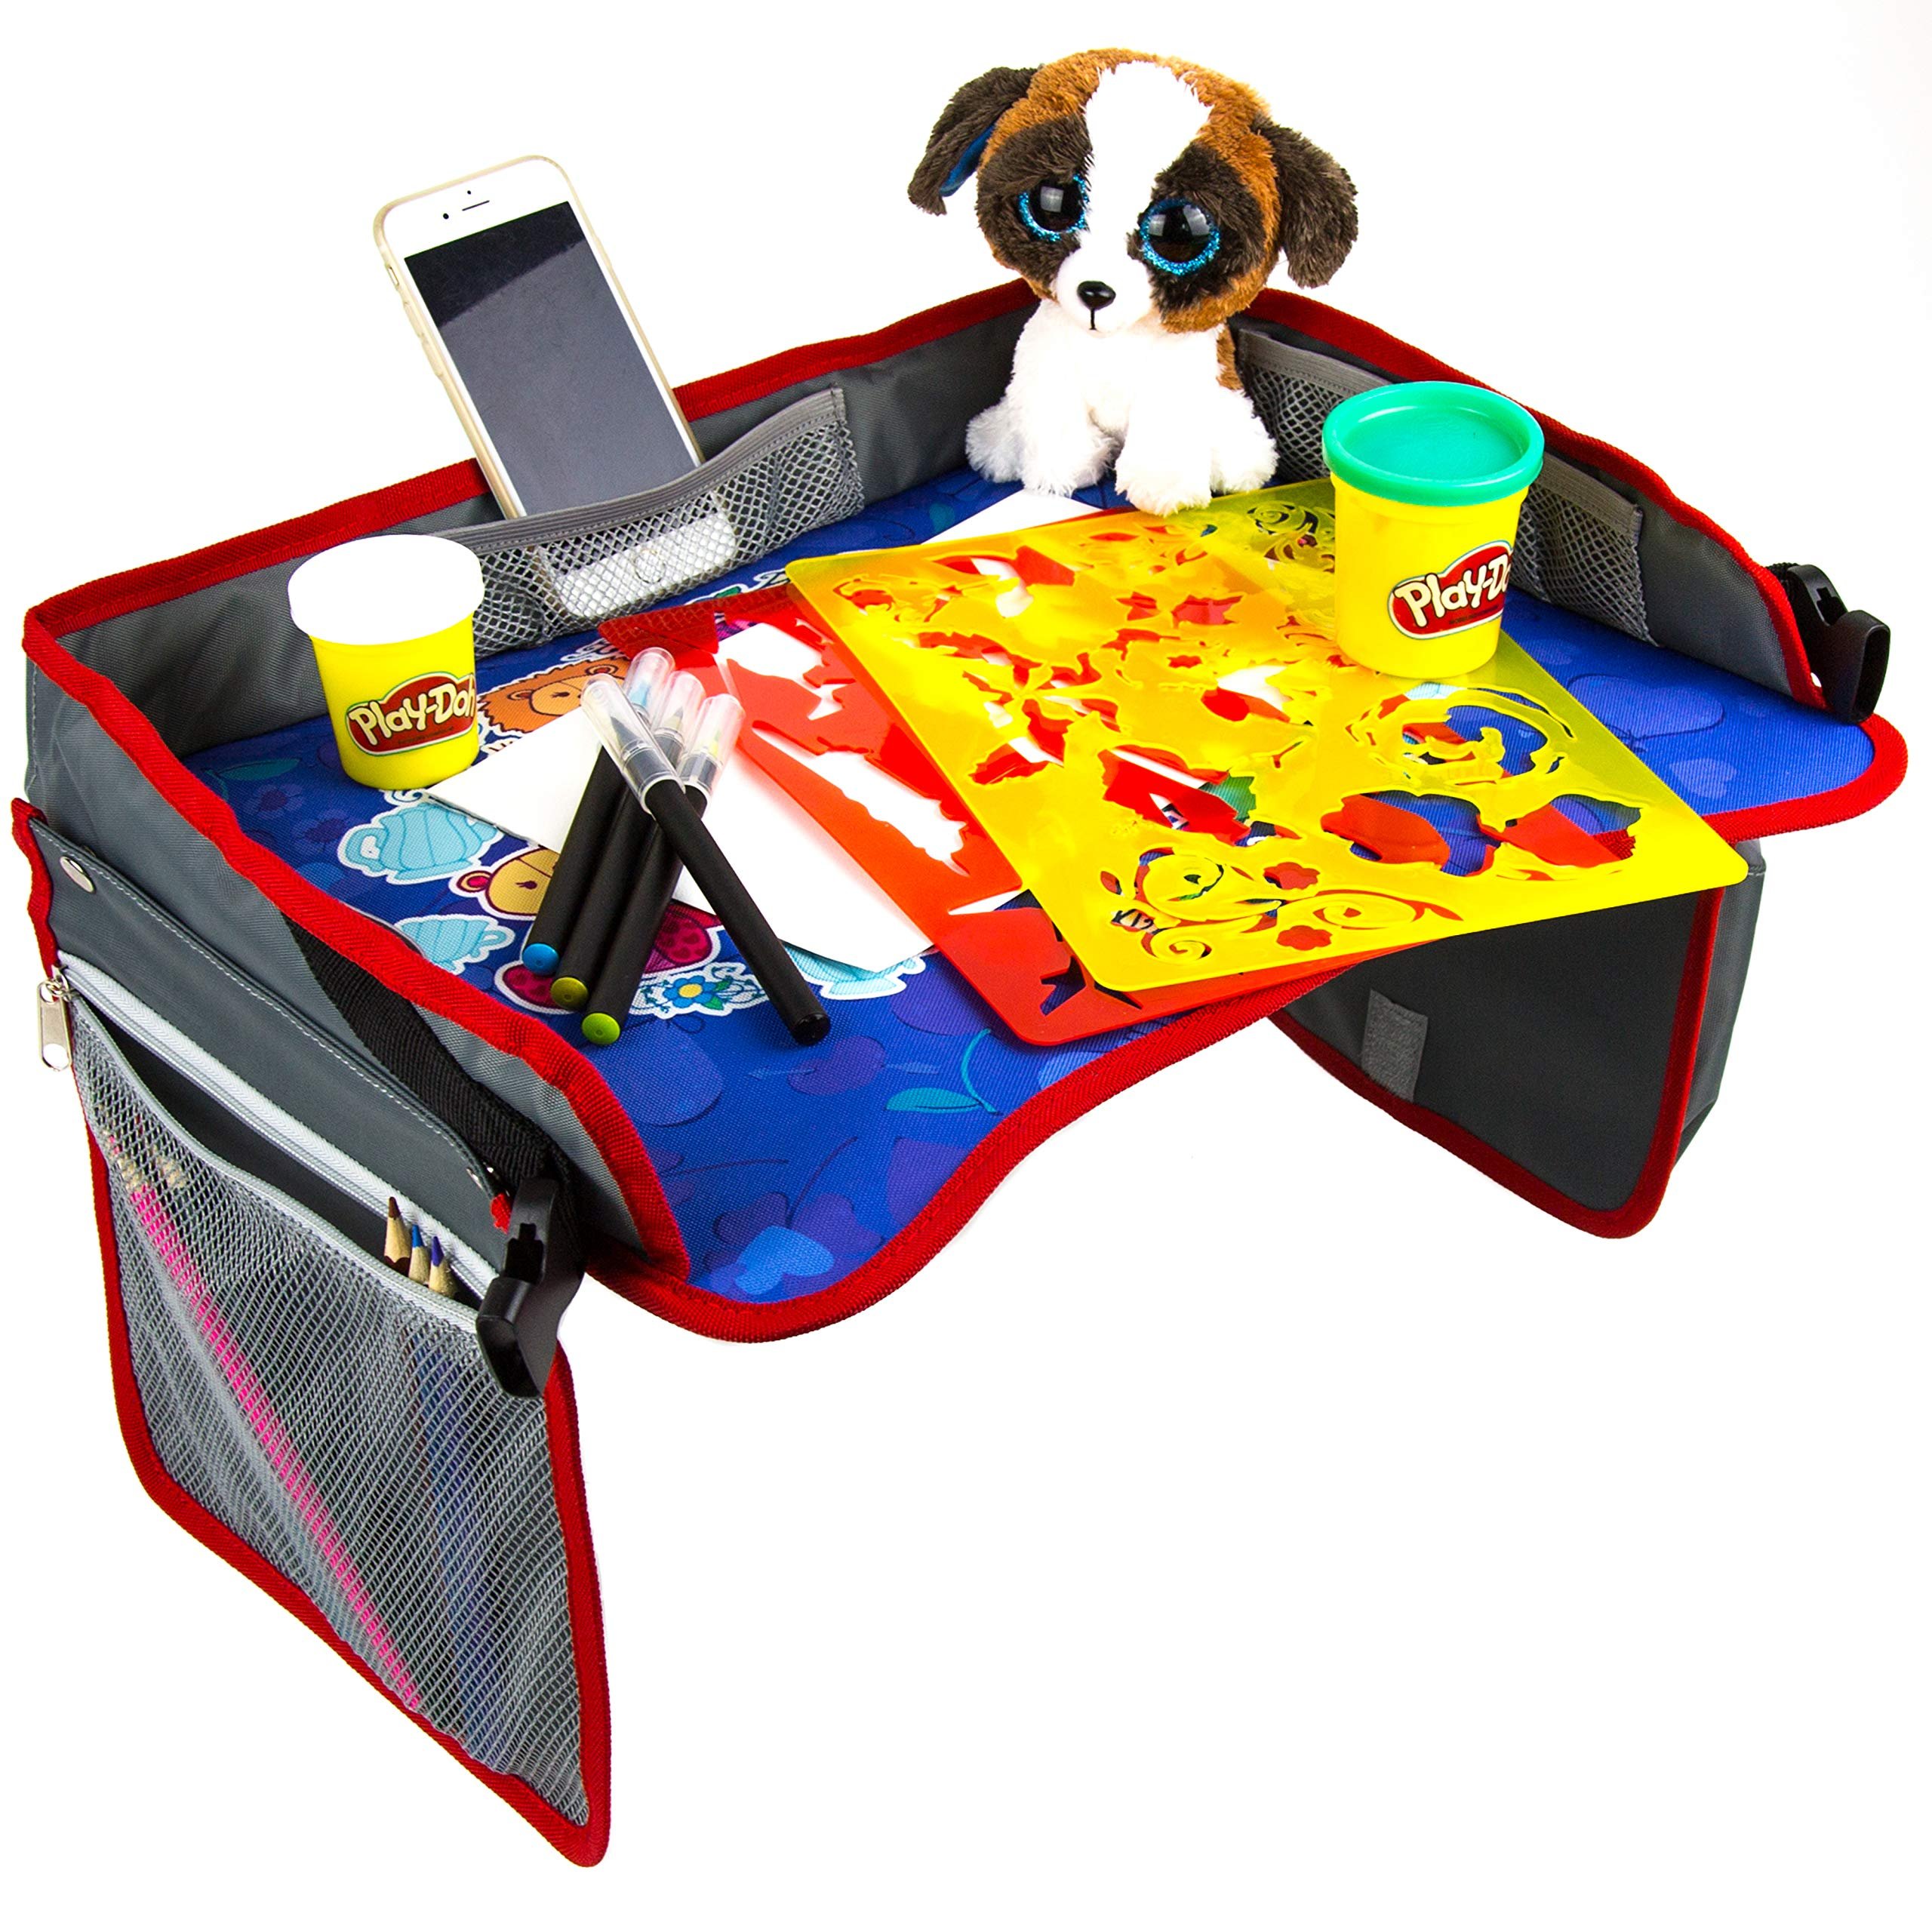 Kids Travel Tray by Matt's Baby   Toddler Car Seat Travel Tray, Play and Snack Tray for Kids, Tablet Holder   Makes Travel Fun   17 13 inches- Waterproof